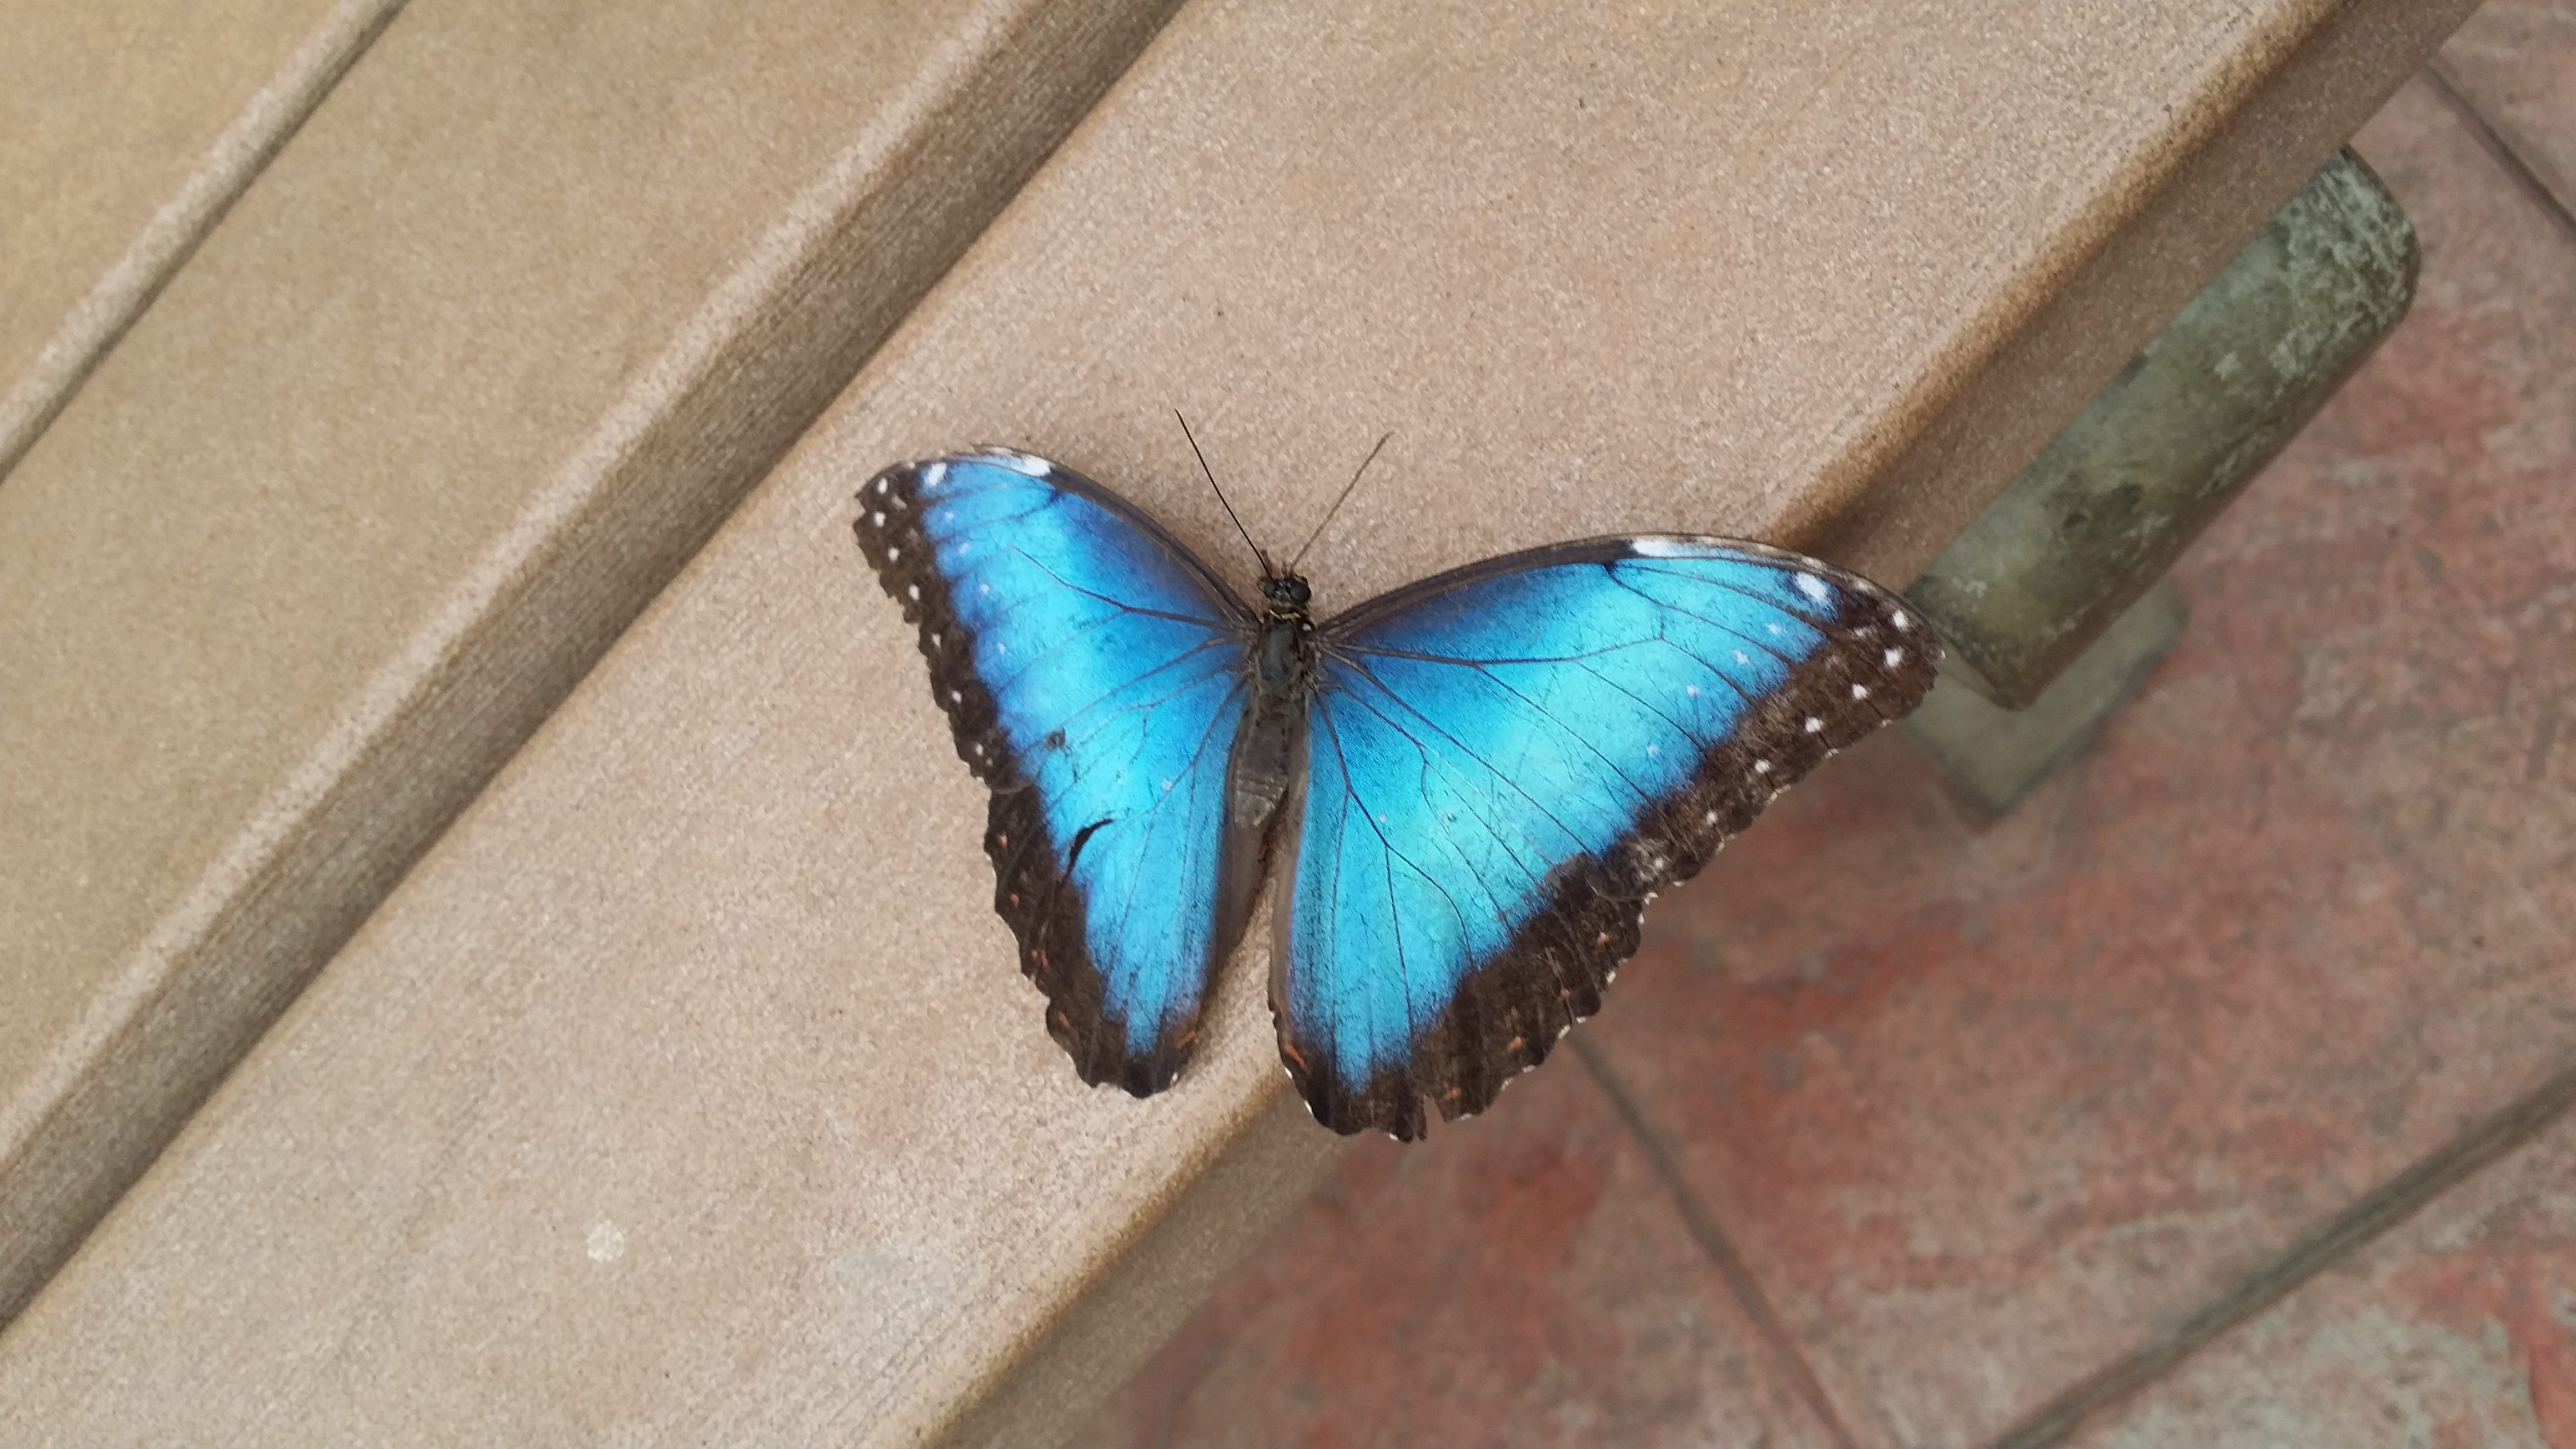 sertoma butterfly house & marine cove located in sioux falls